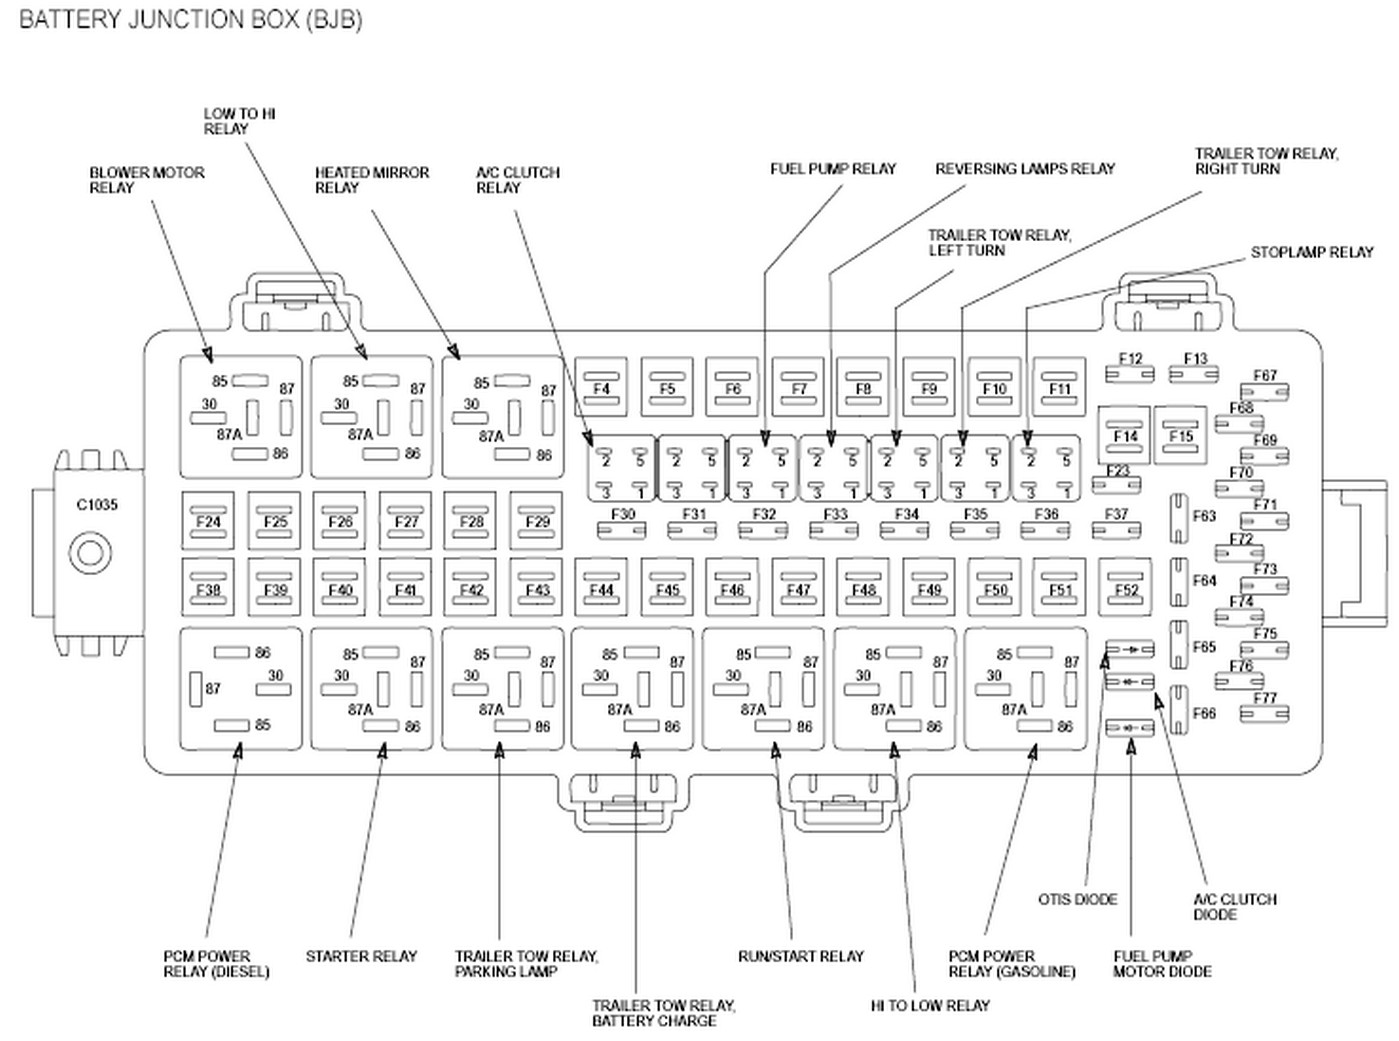 2011 ford f250 fuse box diagram Zoinyhu 2012 f250 fuse box location 2009 ford fusion fuse box diagram 1997 f350 fuse box diagram under the hood at gsmx.co